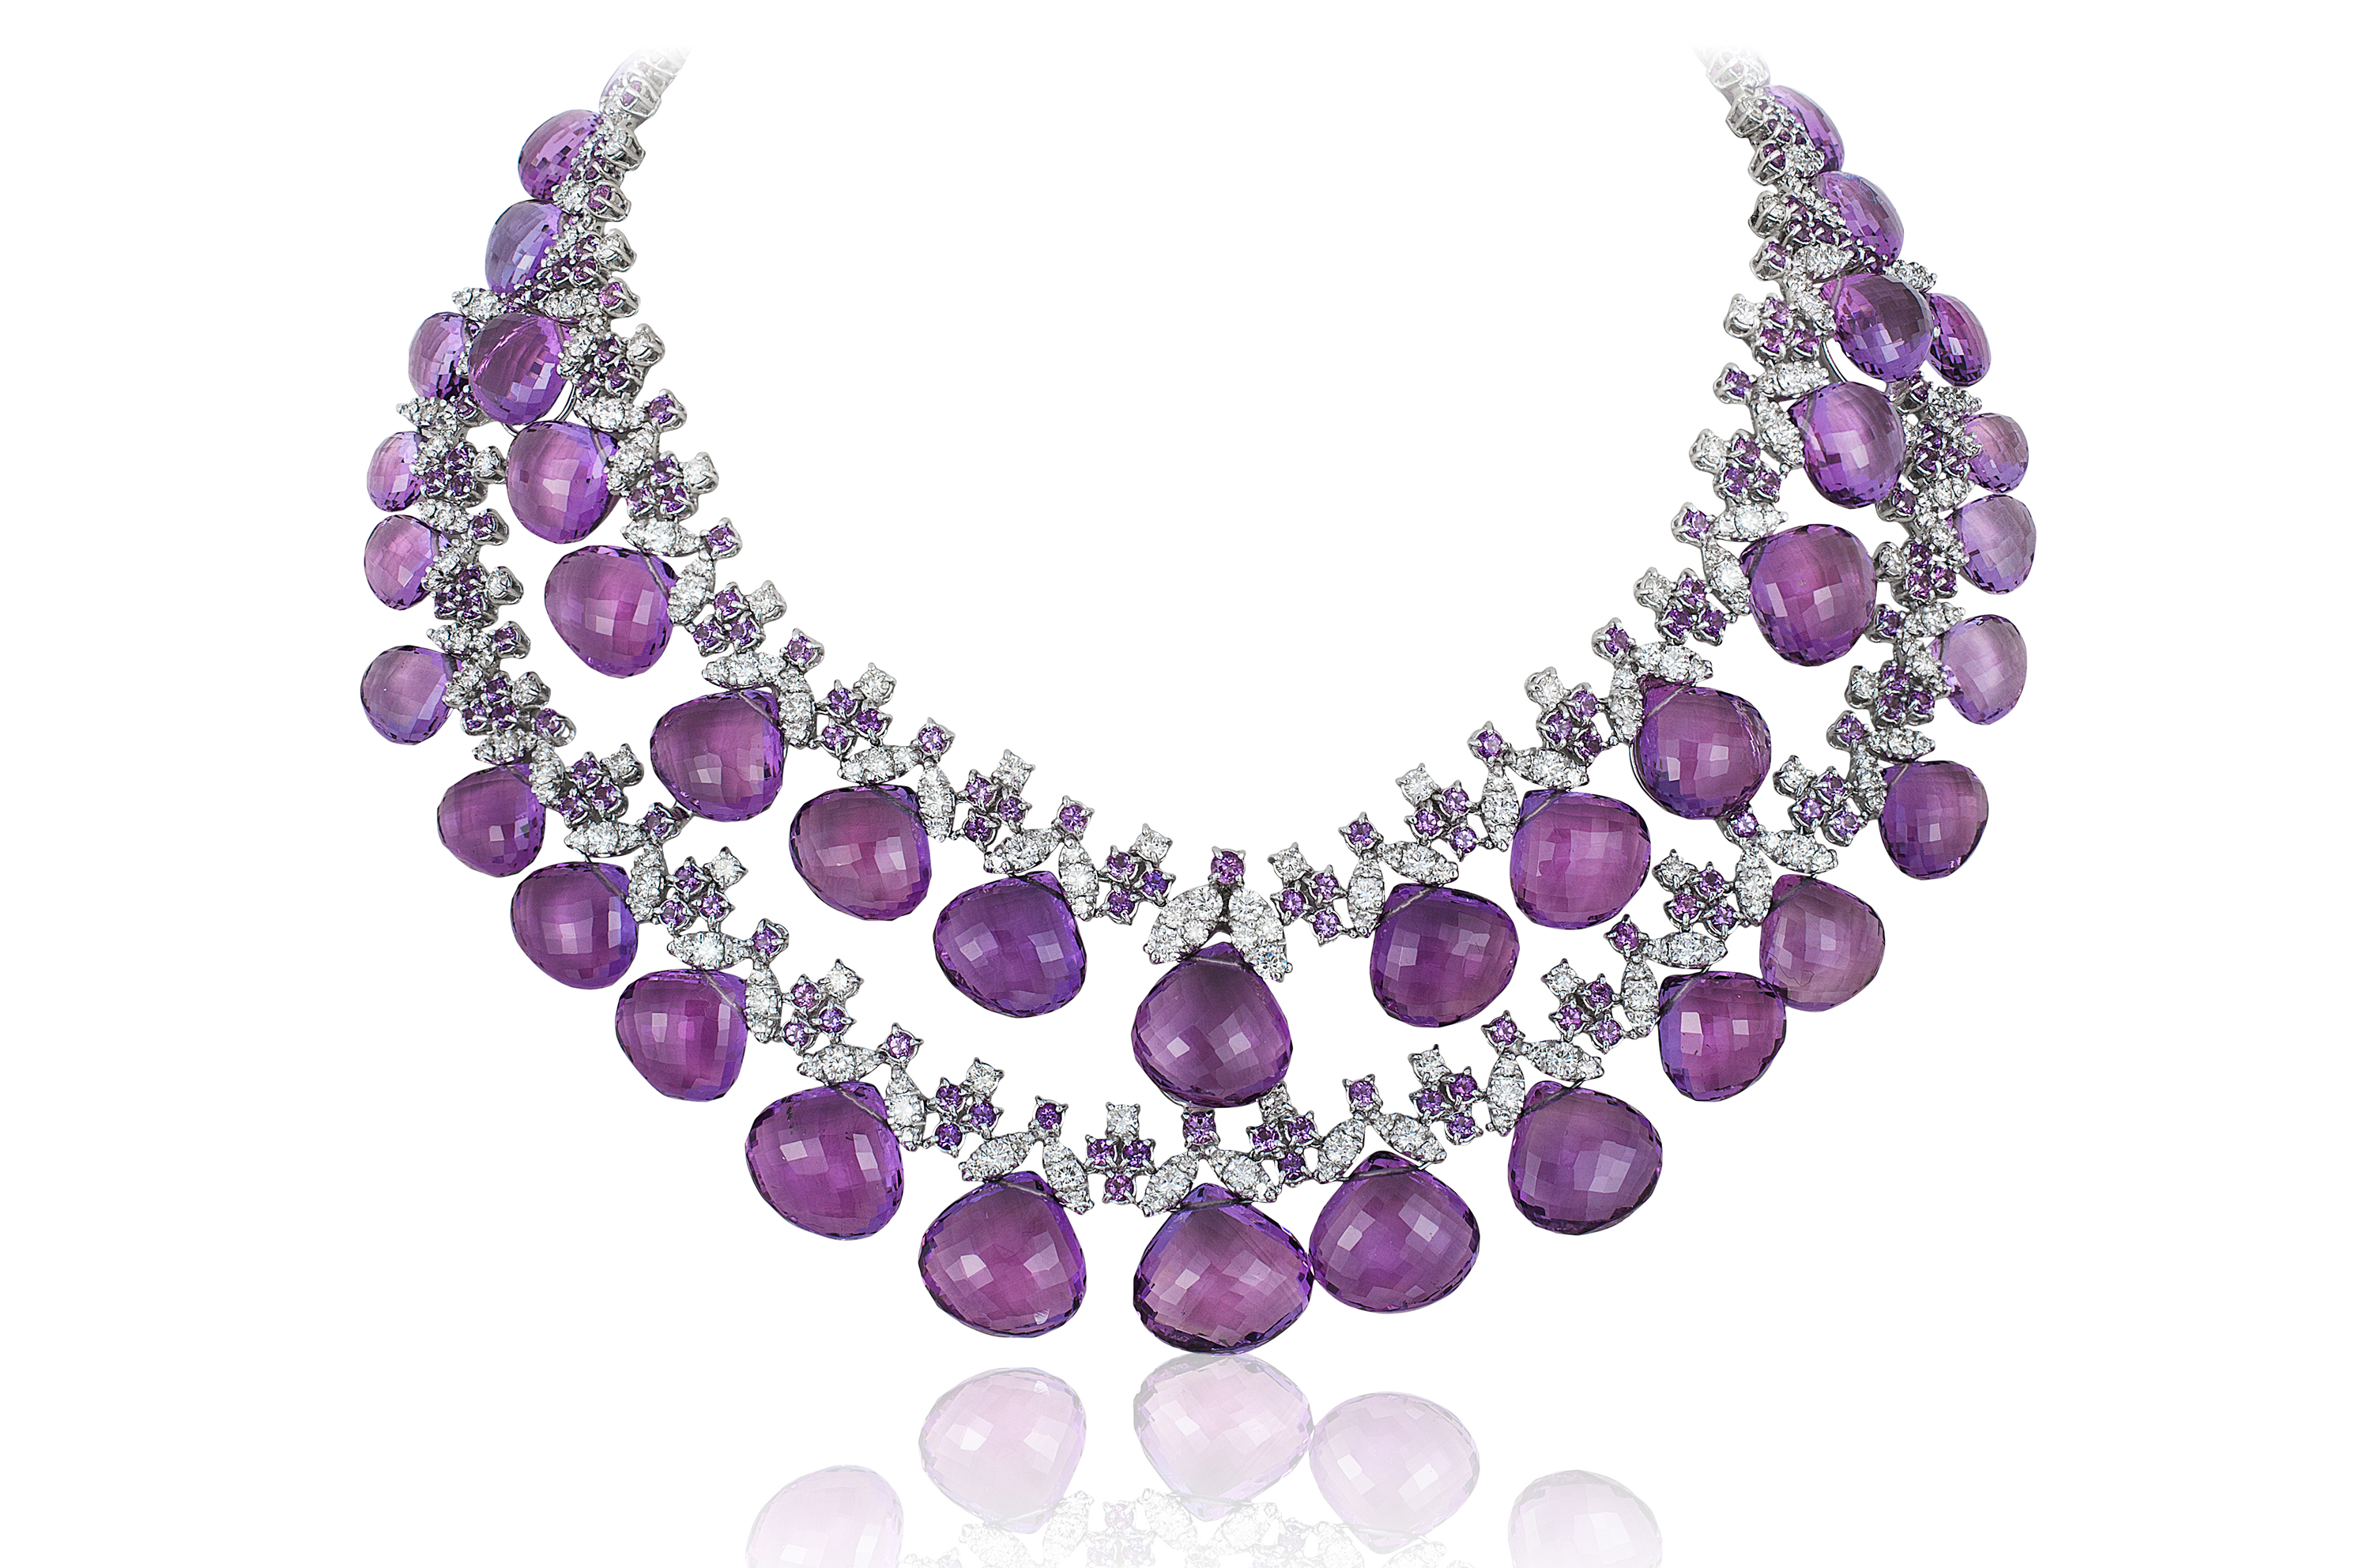 ultra its violet influence to earth in of brilliant gemstone pantone upcoming institute sapphire year inspire a news beautiful december purple edited design announces the and every color